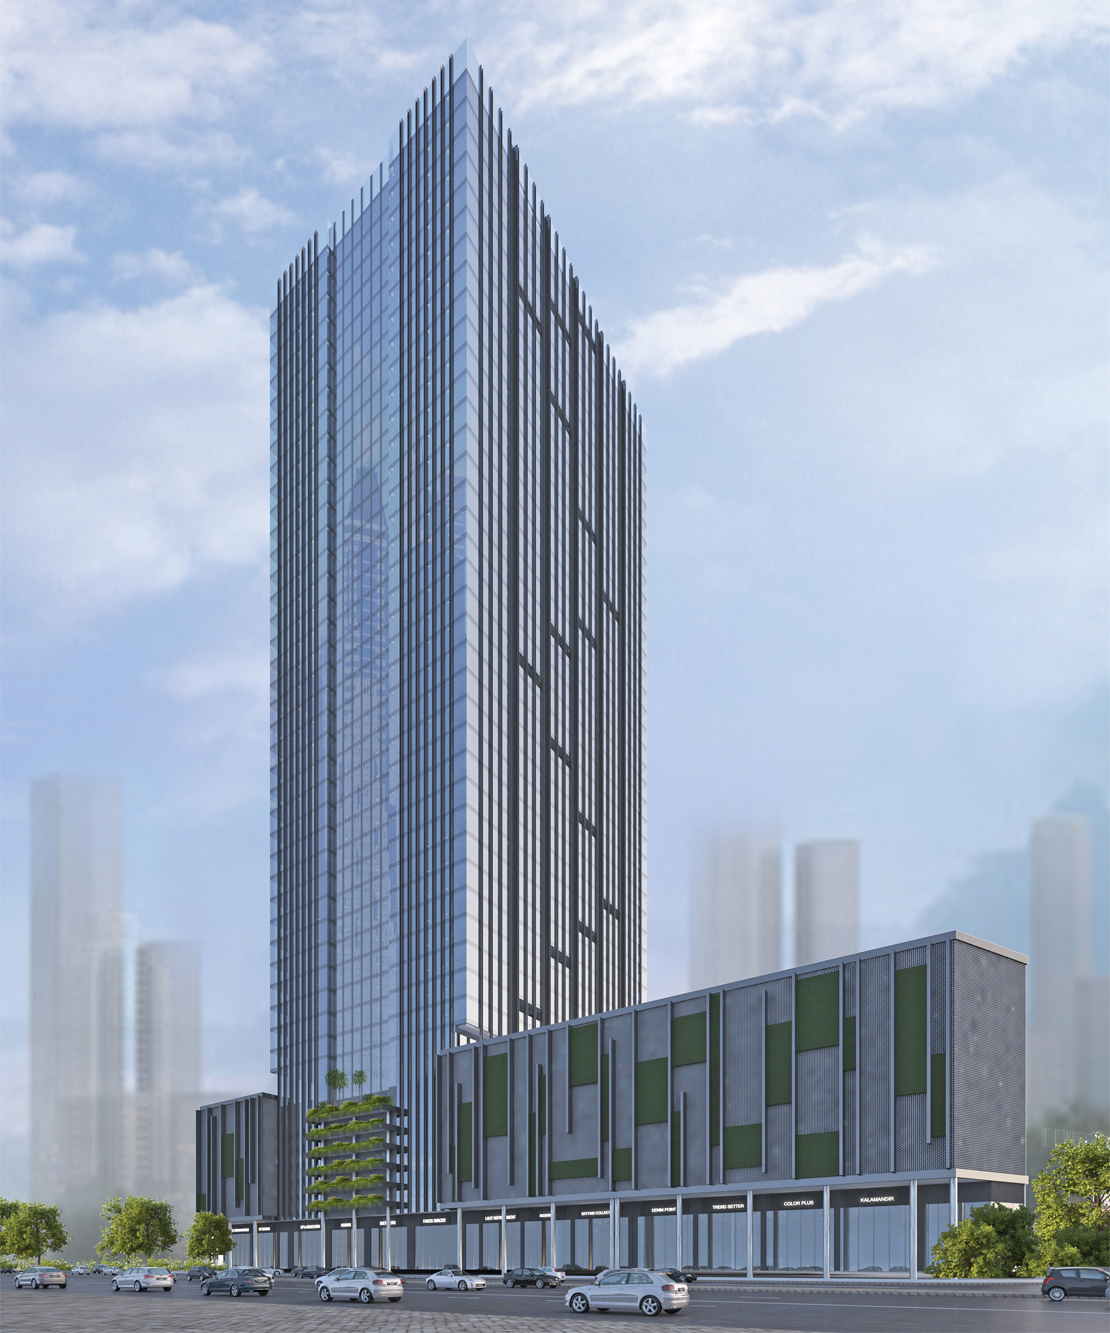 MITSUBISHI ELECTRIC News Releases Mitsubishi Electric to Supply Elevators to 2 Large Luxury Complexes in India